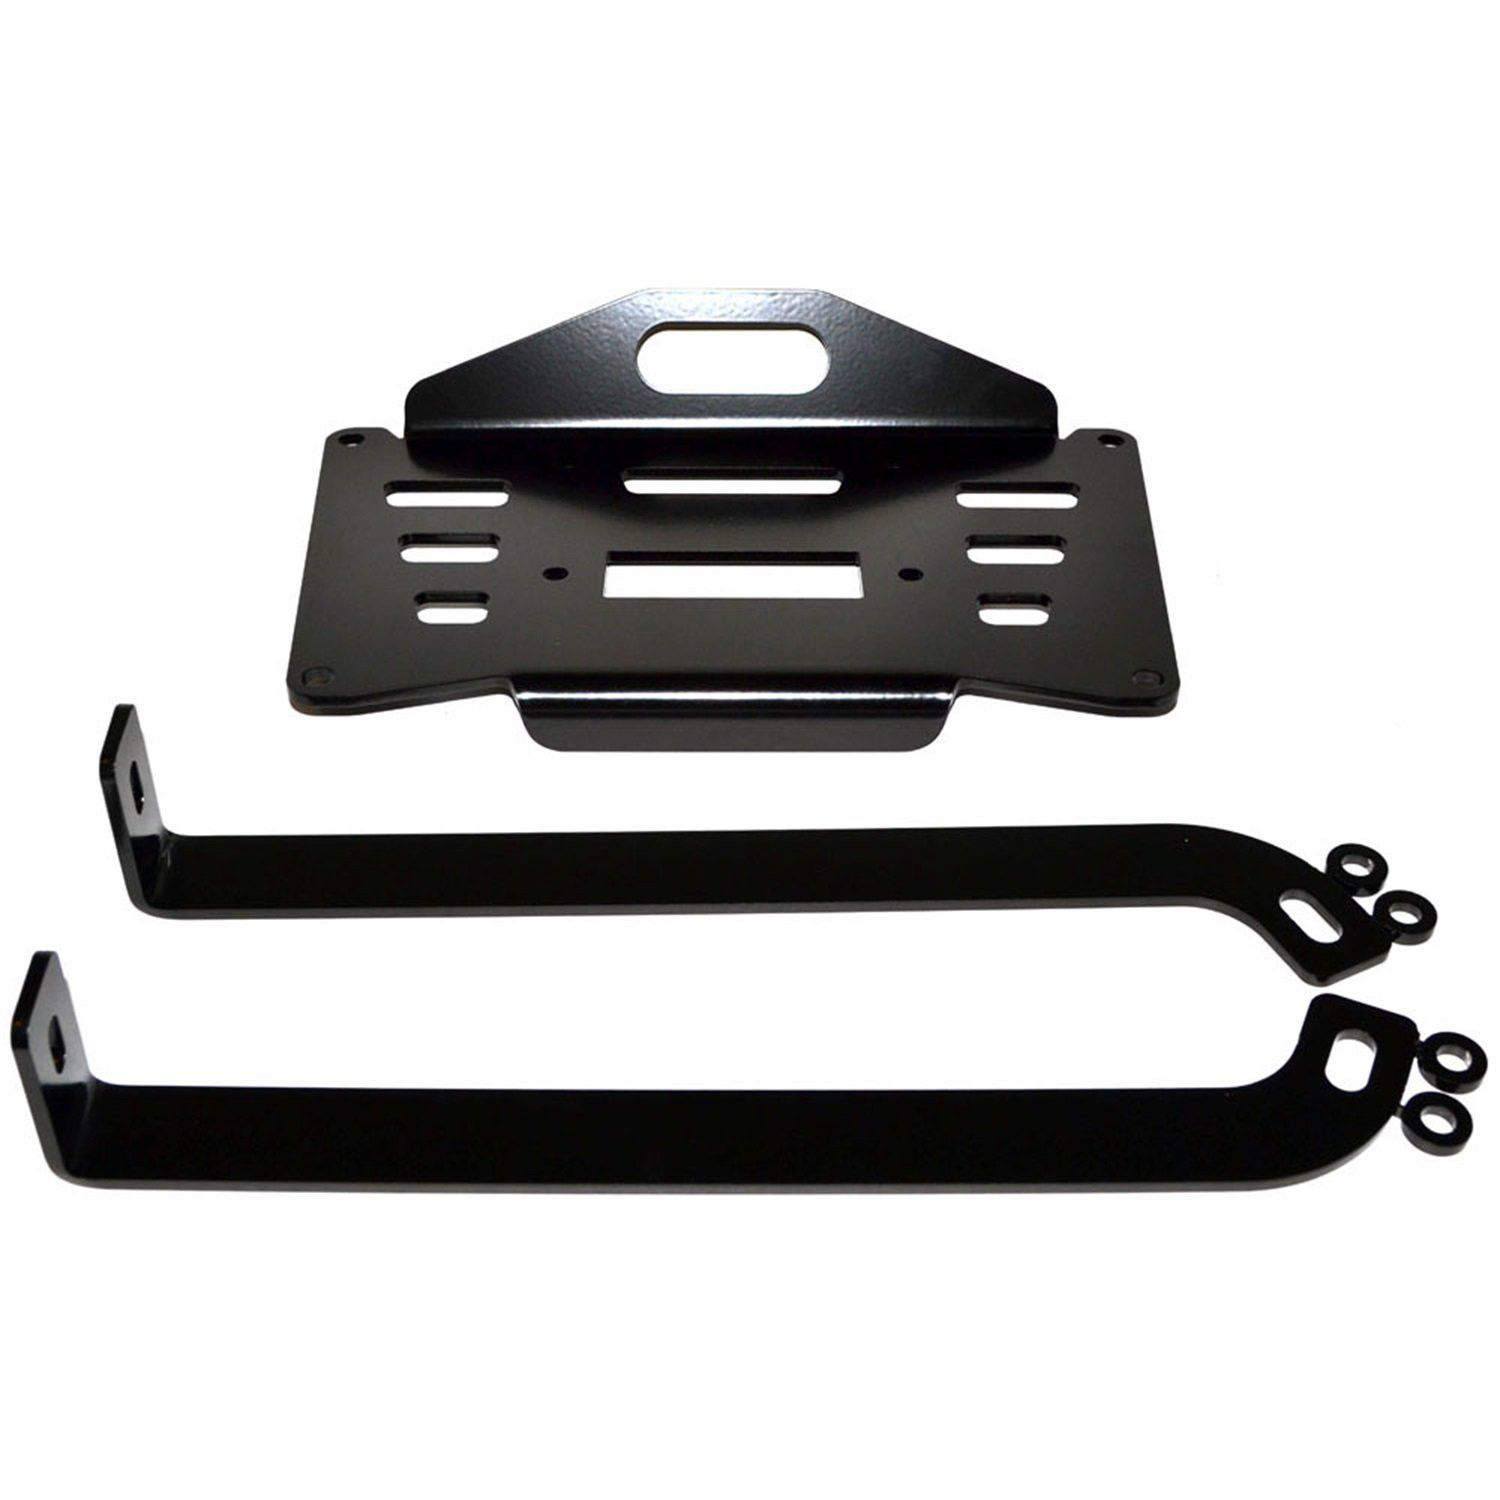 hight resolution of see montana jack s for warn winches mounts accessories parts and repair